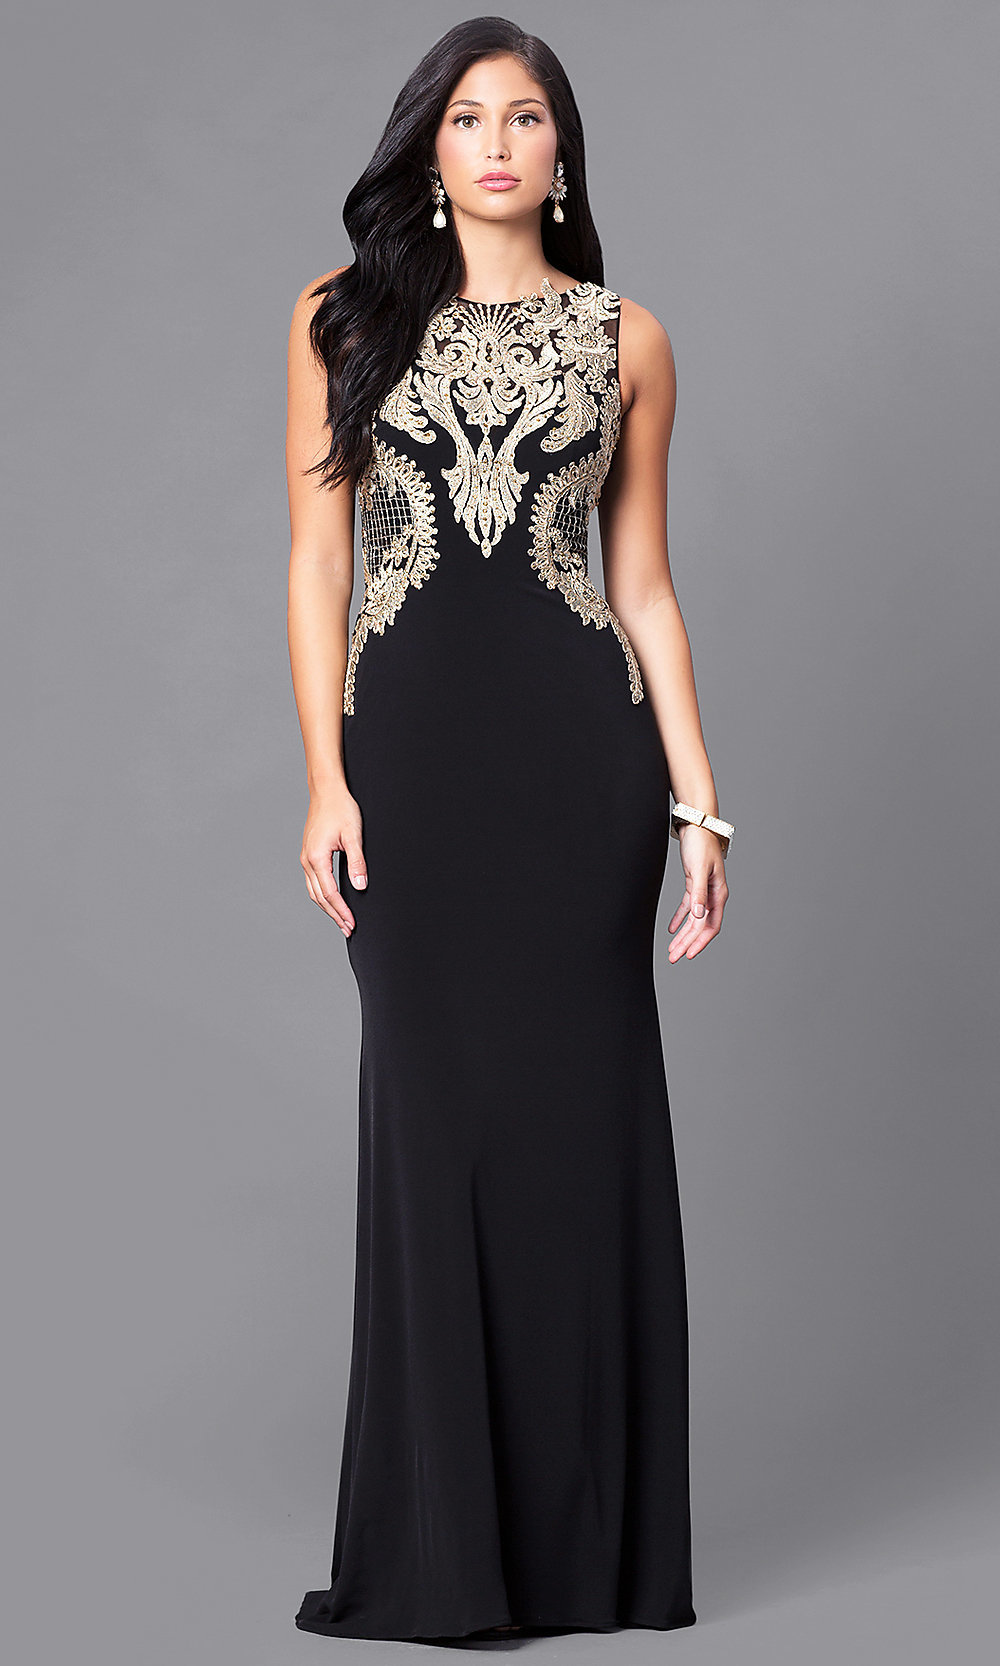 Illusion-Lace Black Long Prom Dress - PromGirl